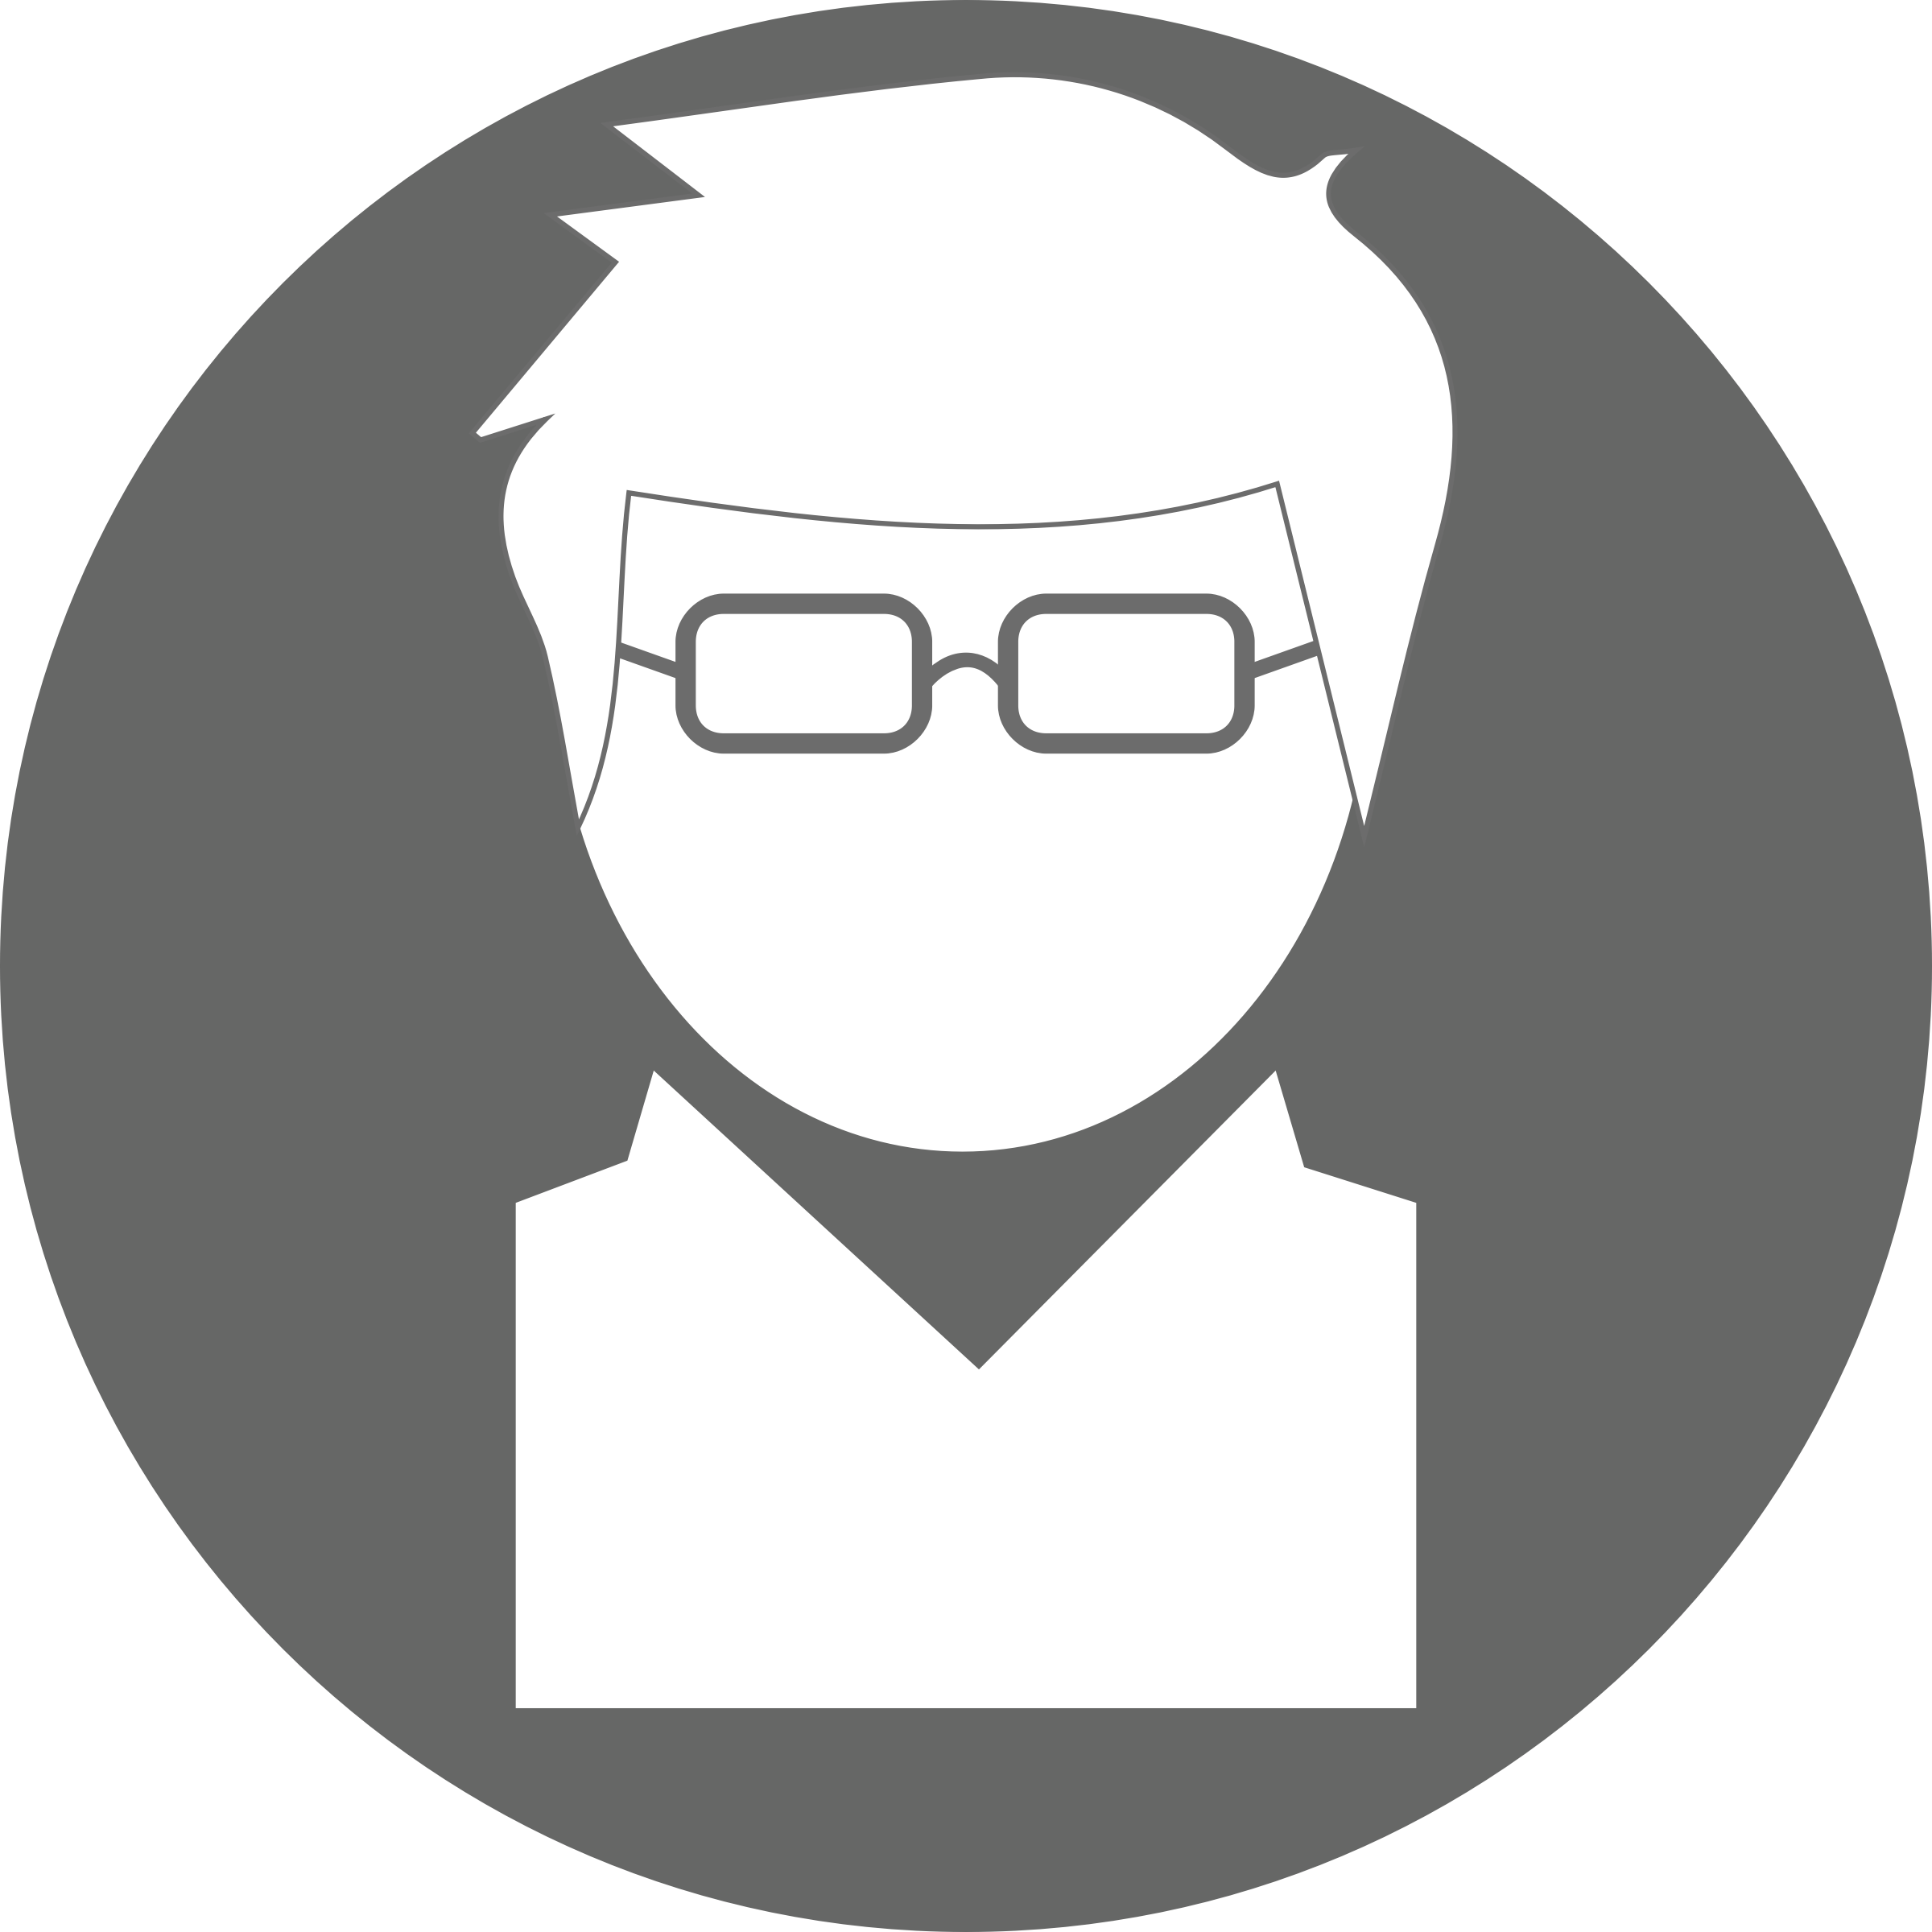 White on grey big. Engineer clipart icon